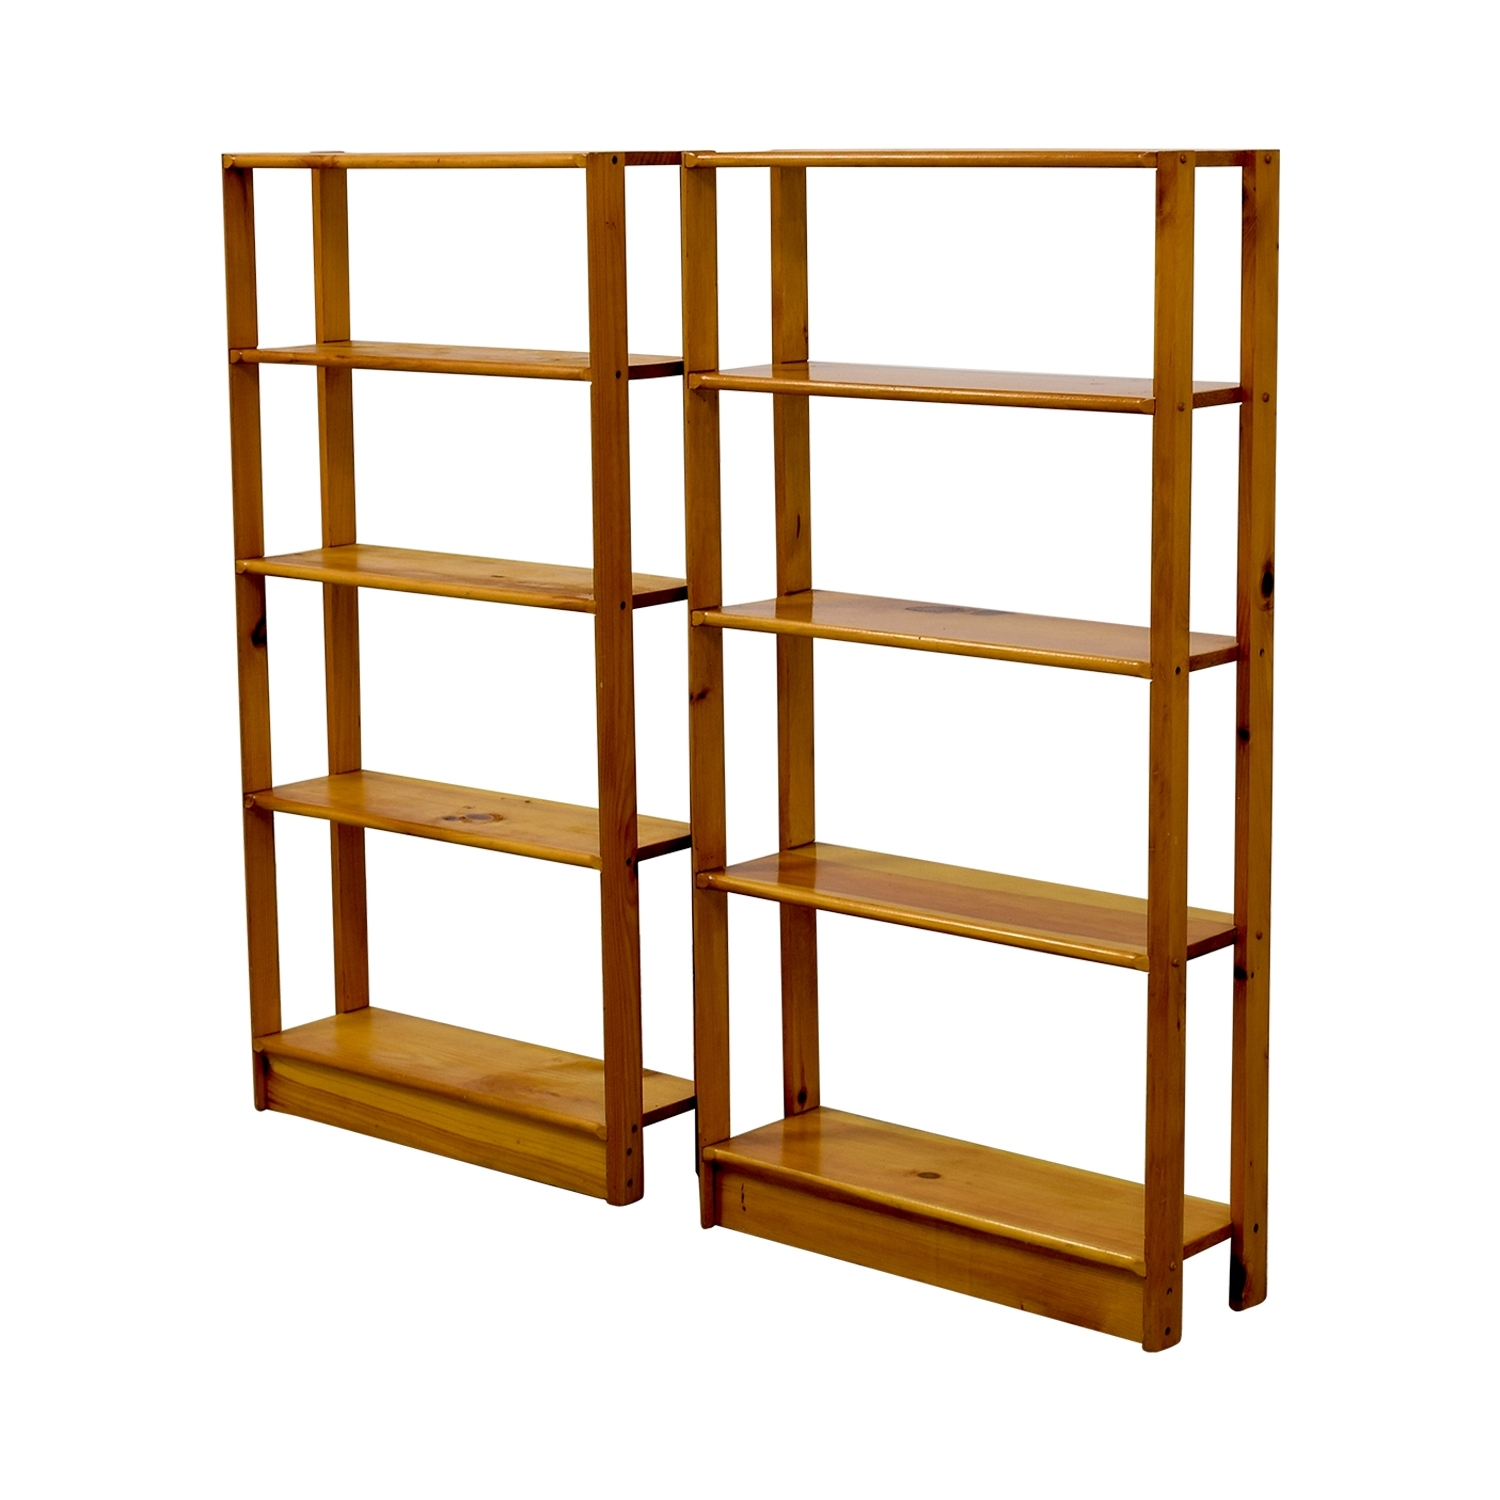 [%44% Off – Slim Light Brown Wooden Bookshelves / Storage With Regard To Fashionable Wooden Bookshelves|Wooden Bookshelves Intended For Popular 44% Off – Slim Light Brown Wooden Bookshelves / Storage|2018 Wooden Bookshelves Intended For 44% Off – Slim Light Brown Wooden Bookshelves / Storage|Most Up To Date 44% Off – Slim Light Brown Wooden Bookshelves / Storage In Wooden Bookshelves%] (View 1 of 15)